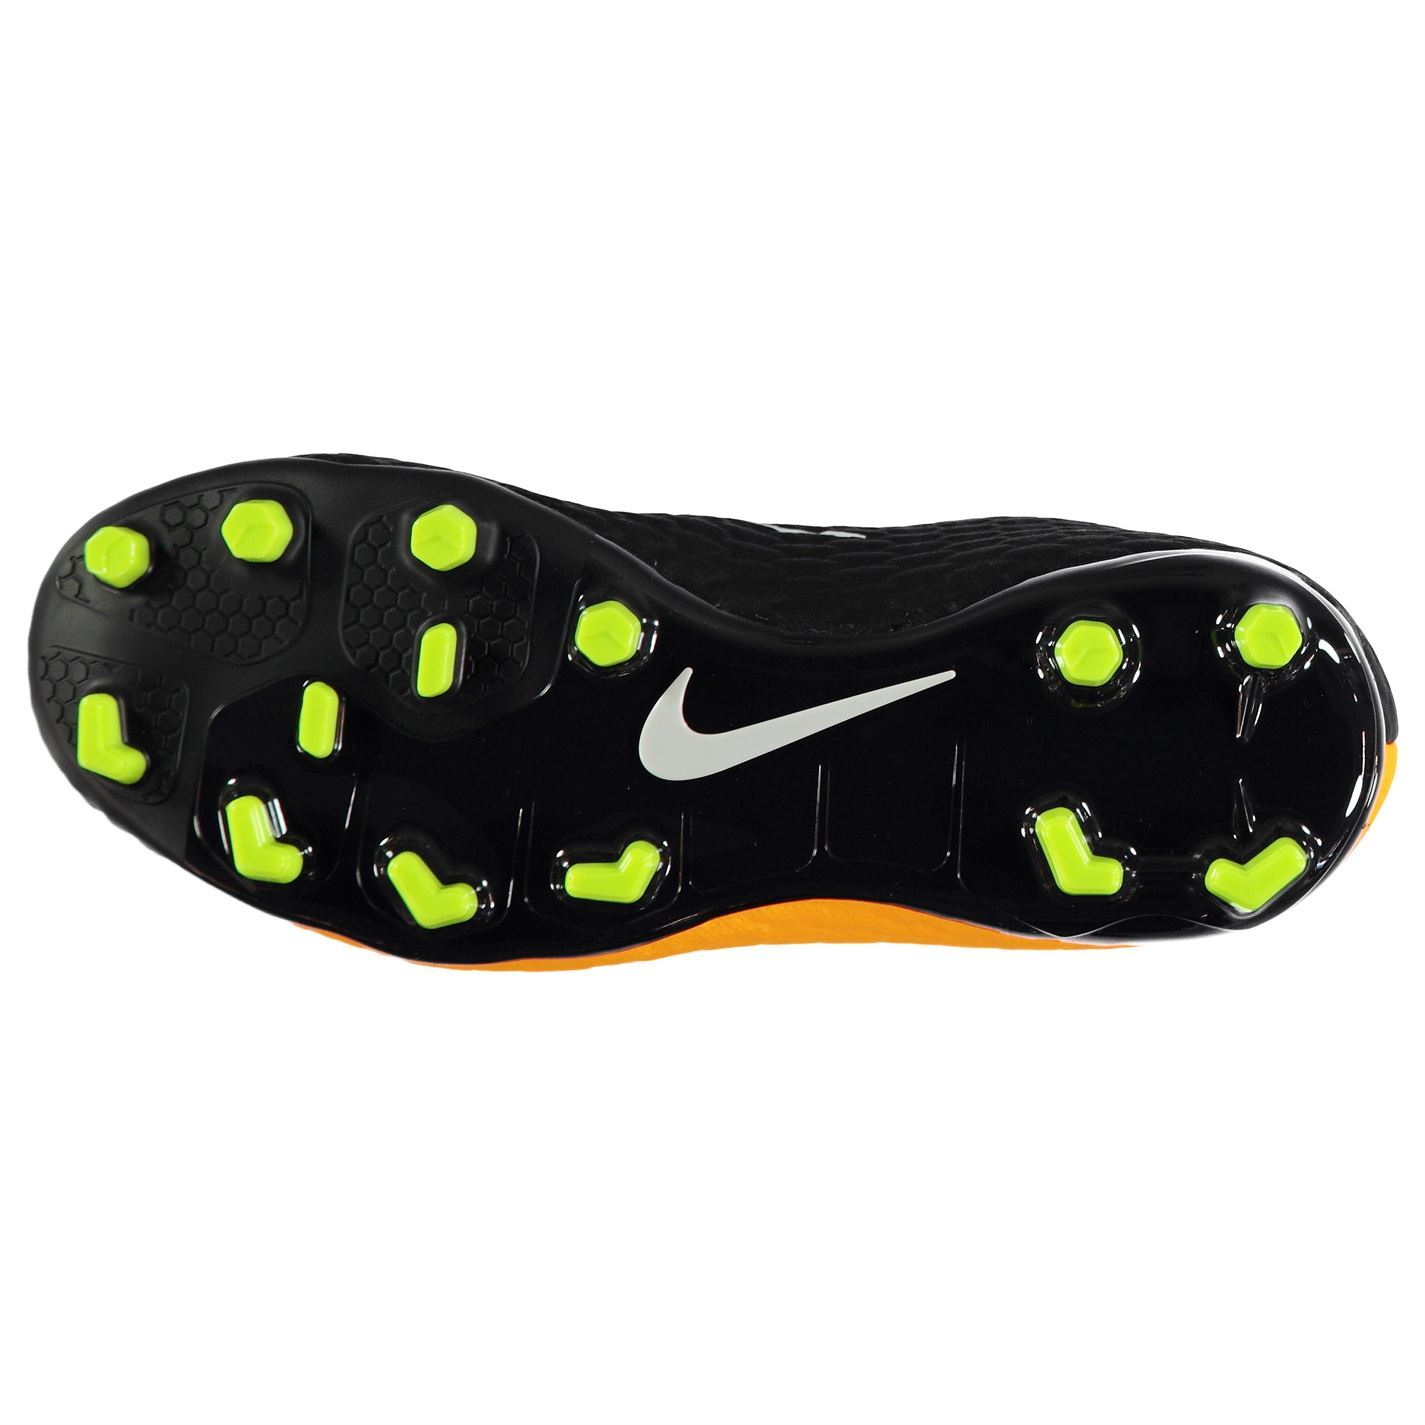 ... Nike Hypervenom Phelon 3 FG Football Boots Childs Orange Soccer Shoes  Cleats ... c376cc32014